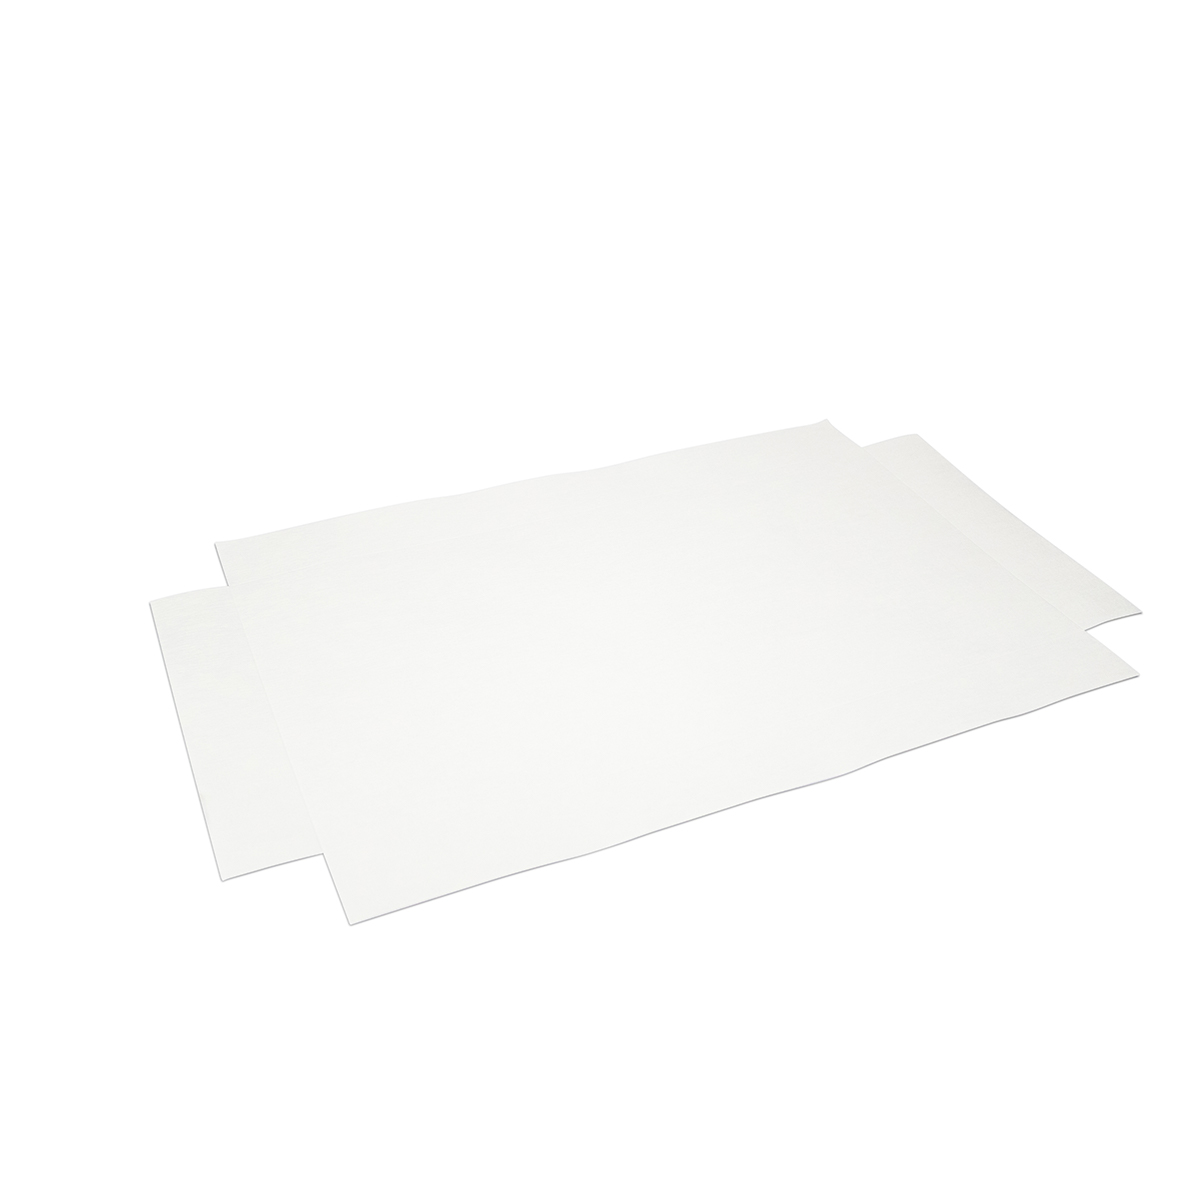 Tray Liner Image